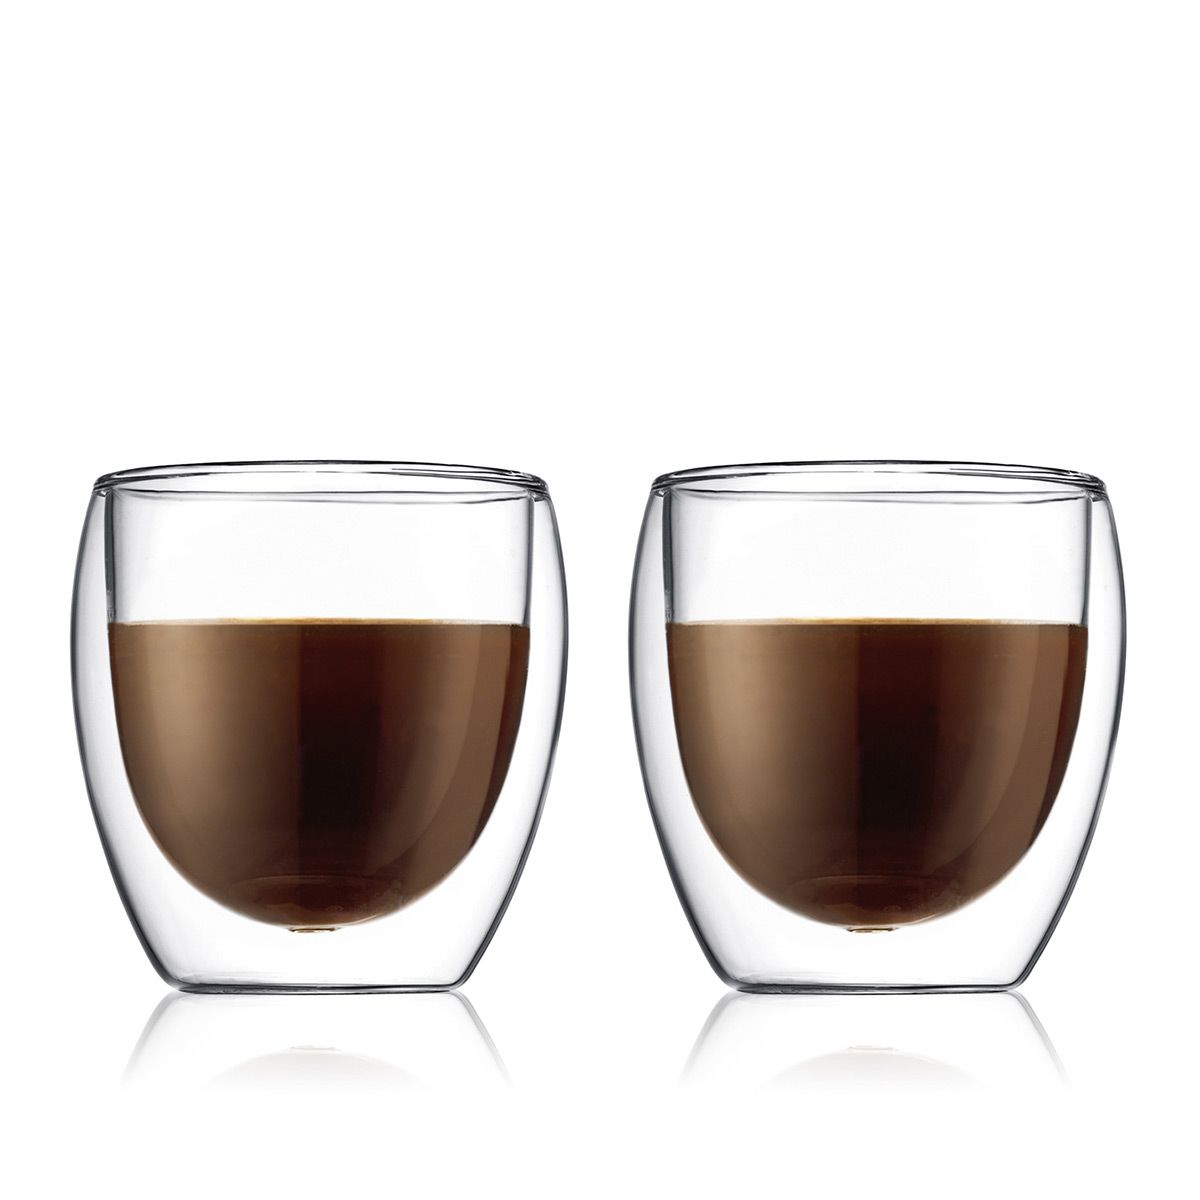 Double Wall Glasses PAVINA - 2 pieces set 0.25 L